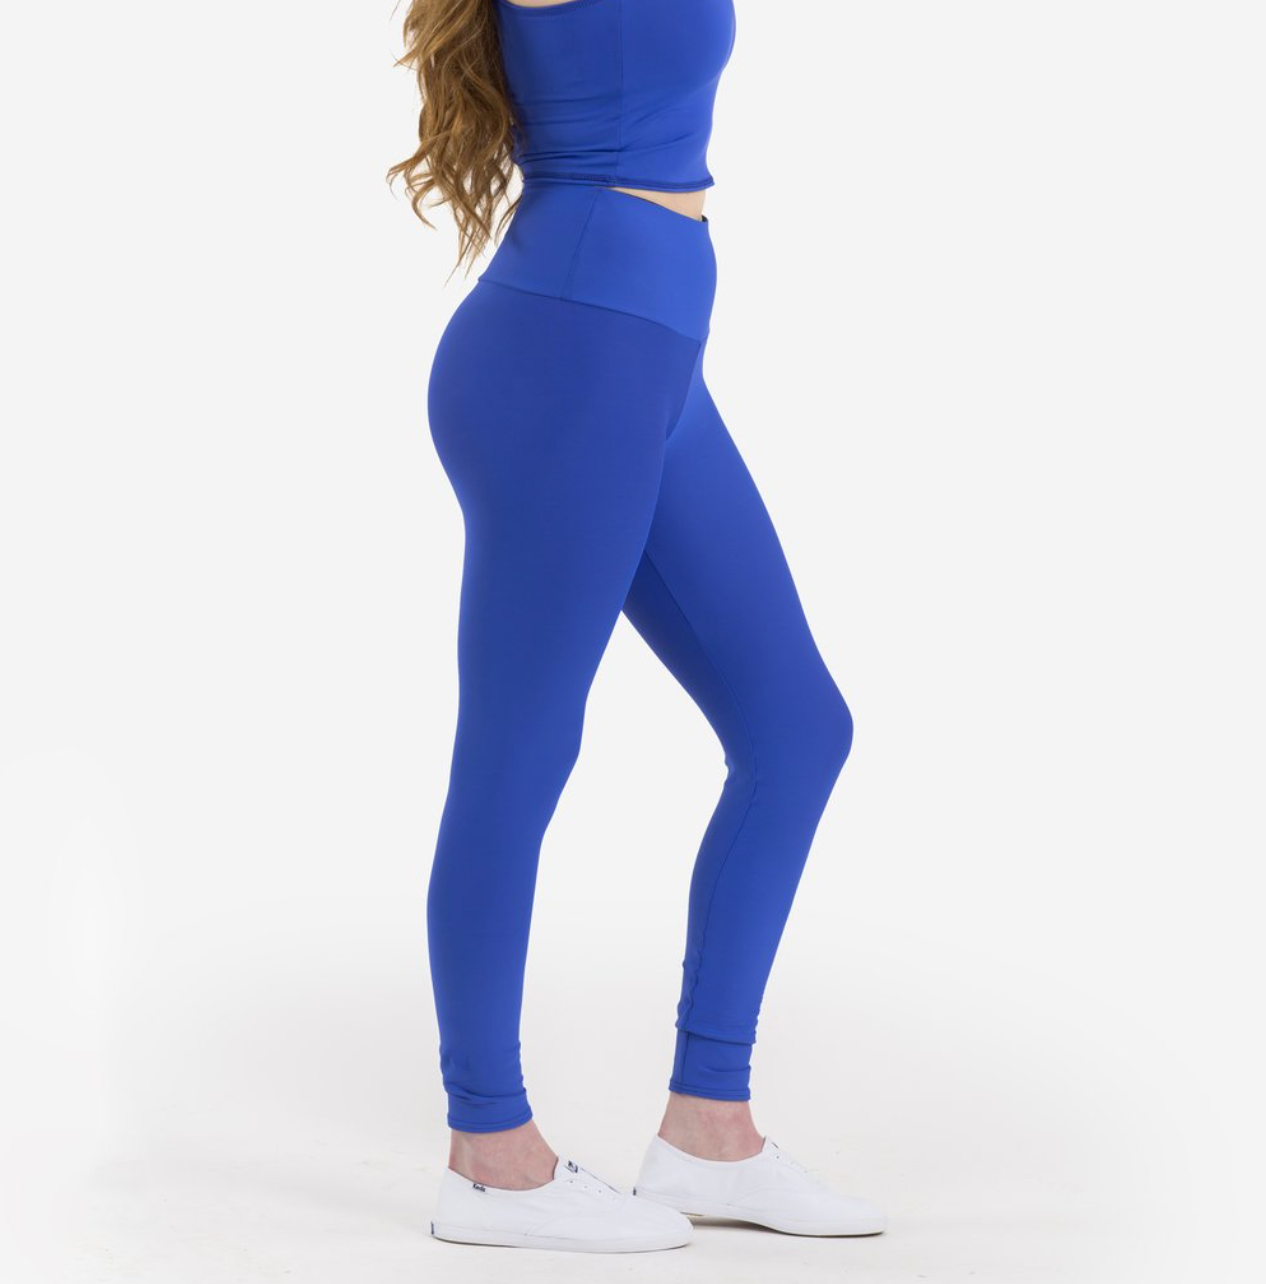 Sample Rack - Barely There Leggings - S